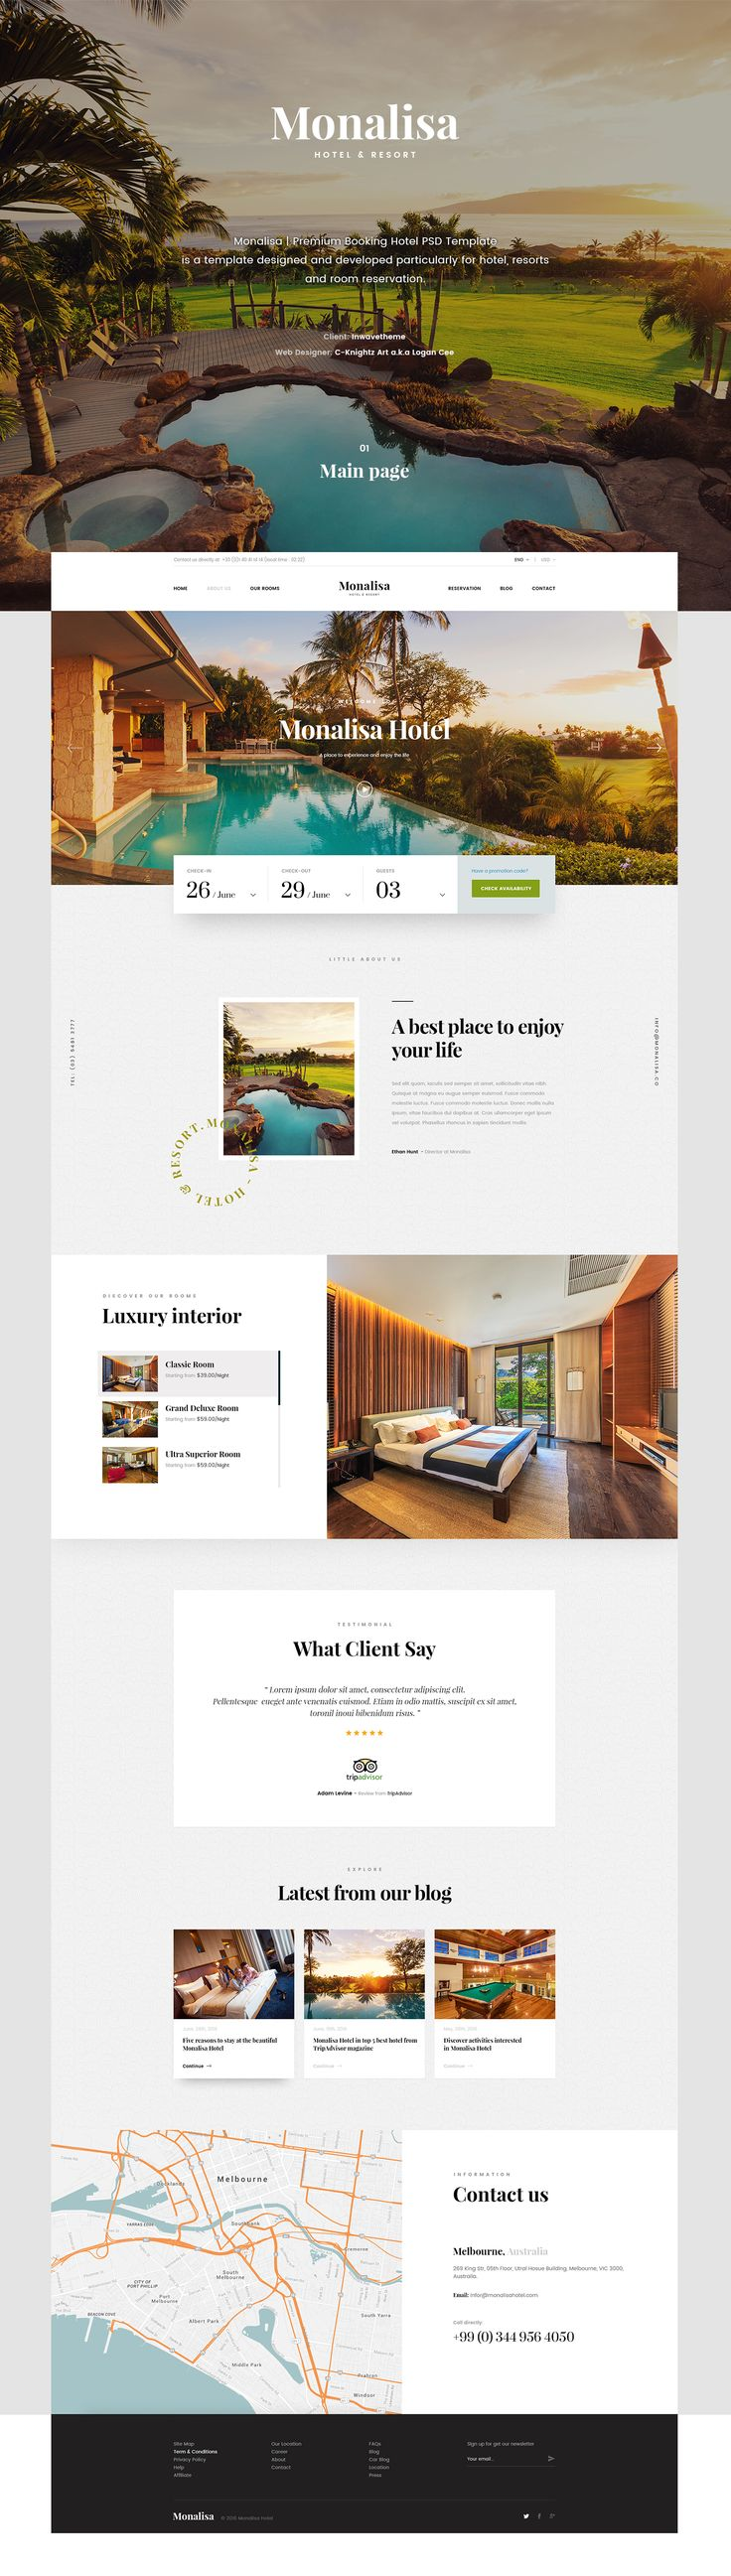 Monalisa   Booking Hotel Site On Behance Part 5